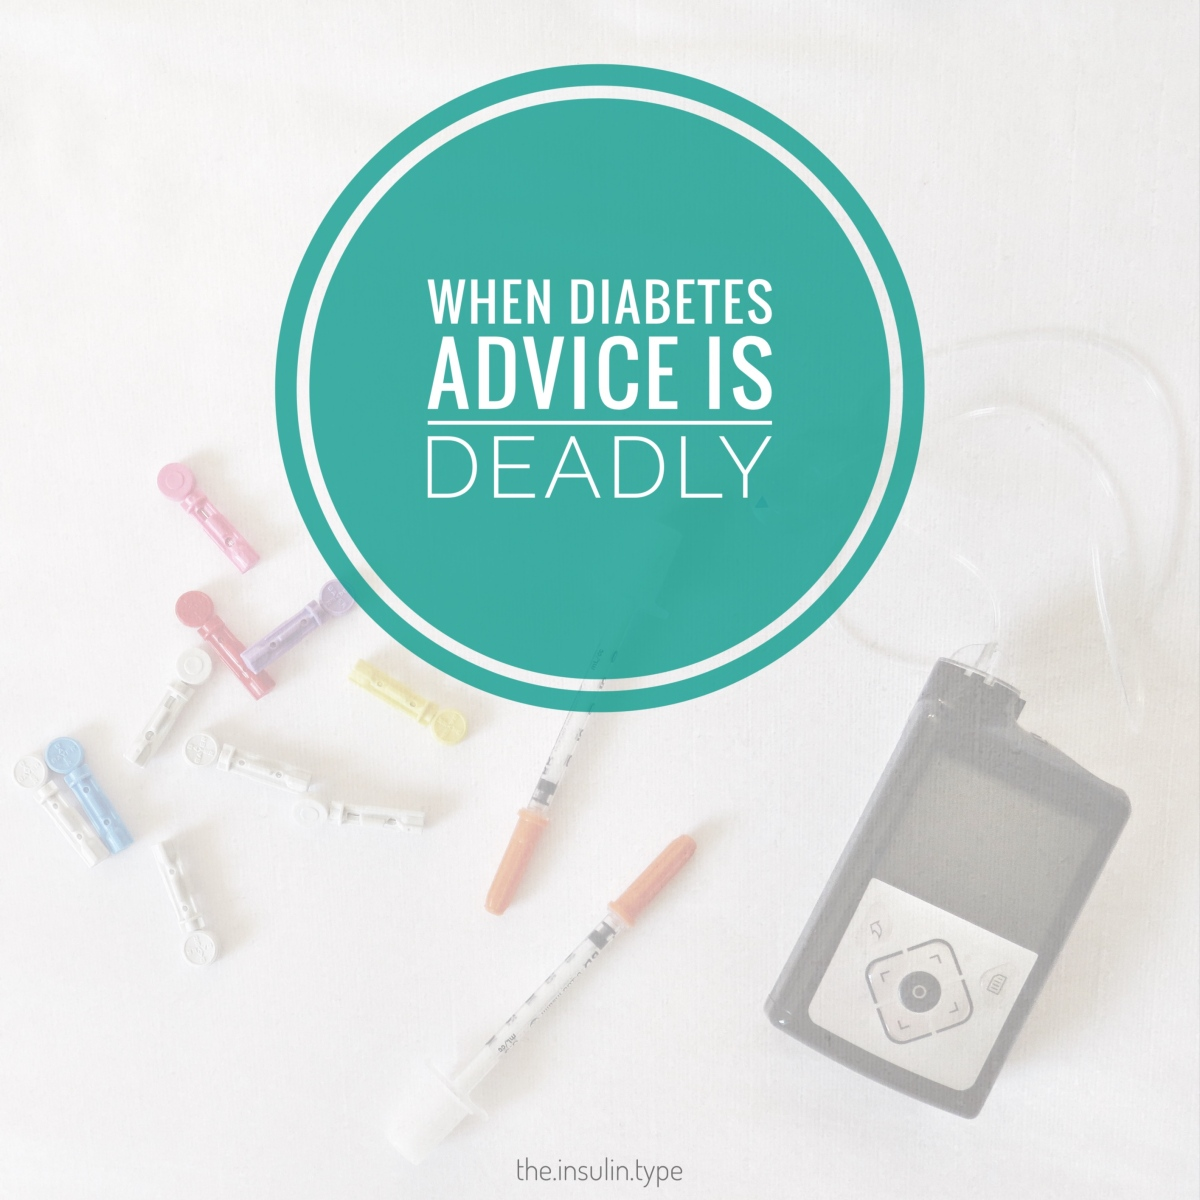 When Diabetes Advice is Deadly